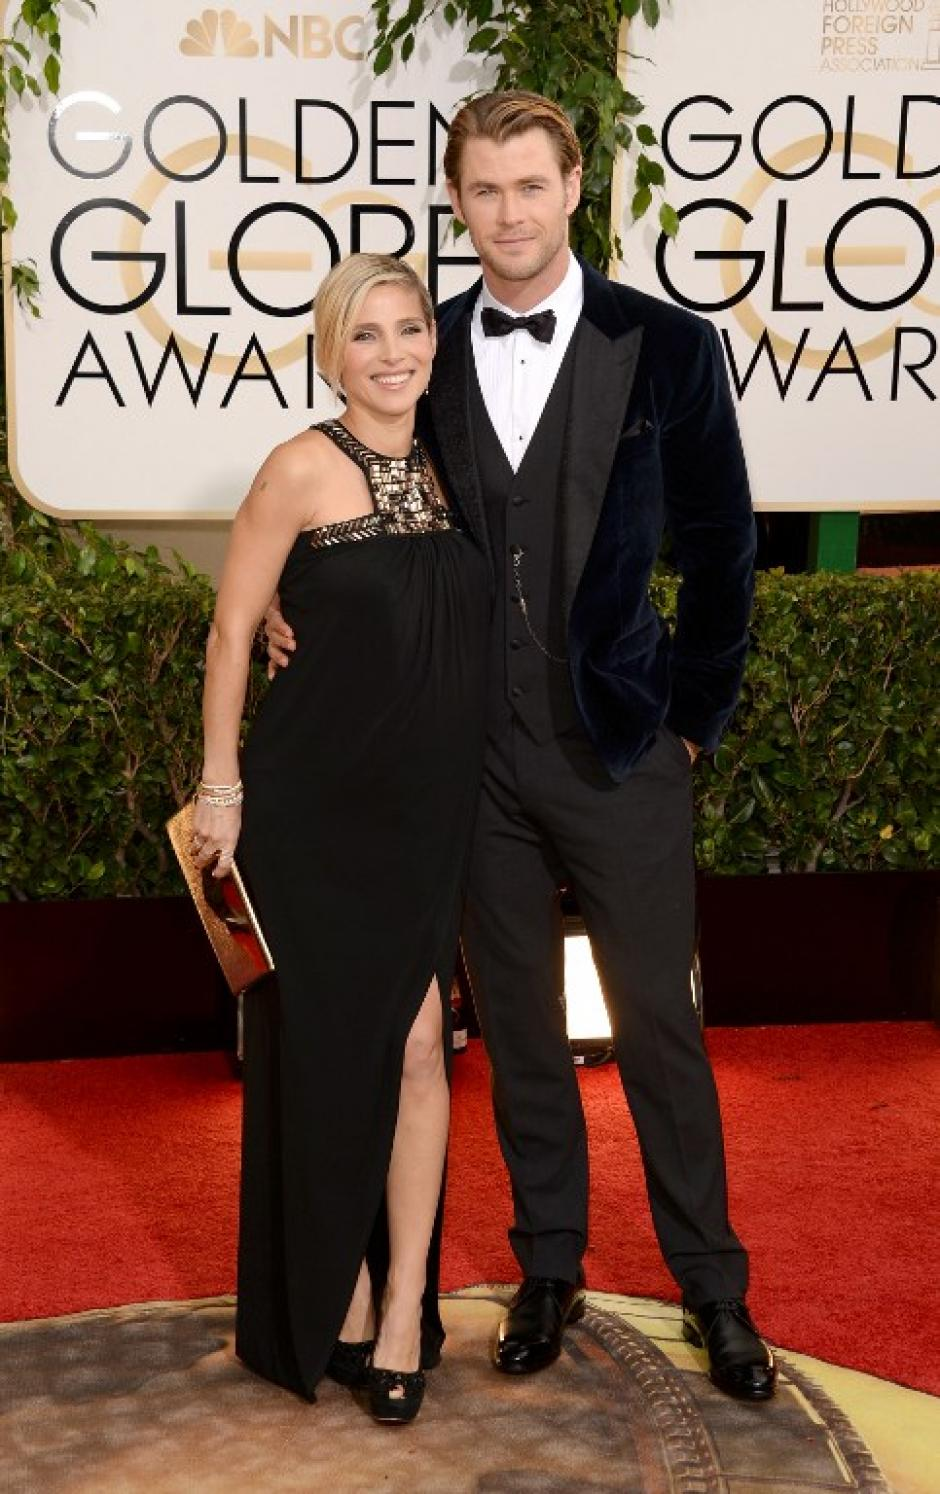 El actor Chris Hemsworth y su esposa Elsa Pataky. (Foto: AFP)